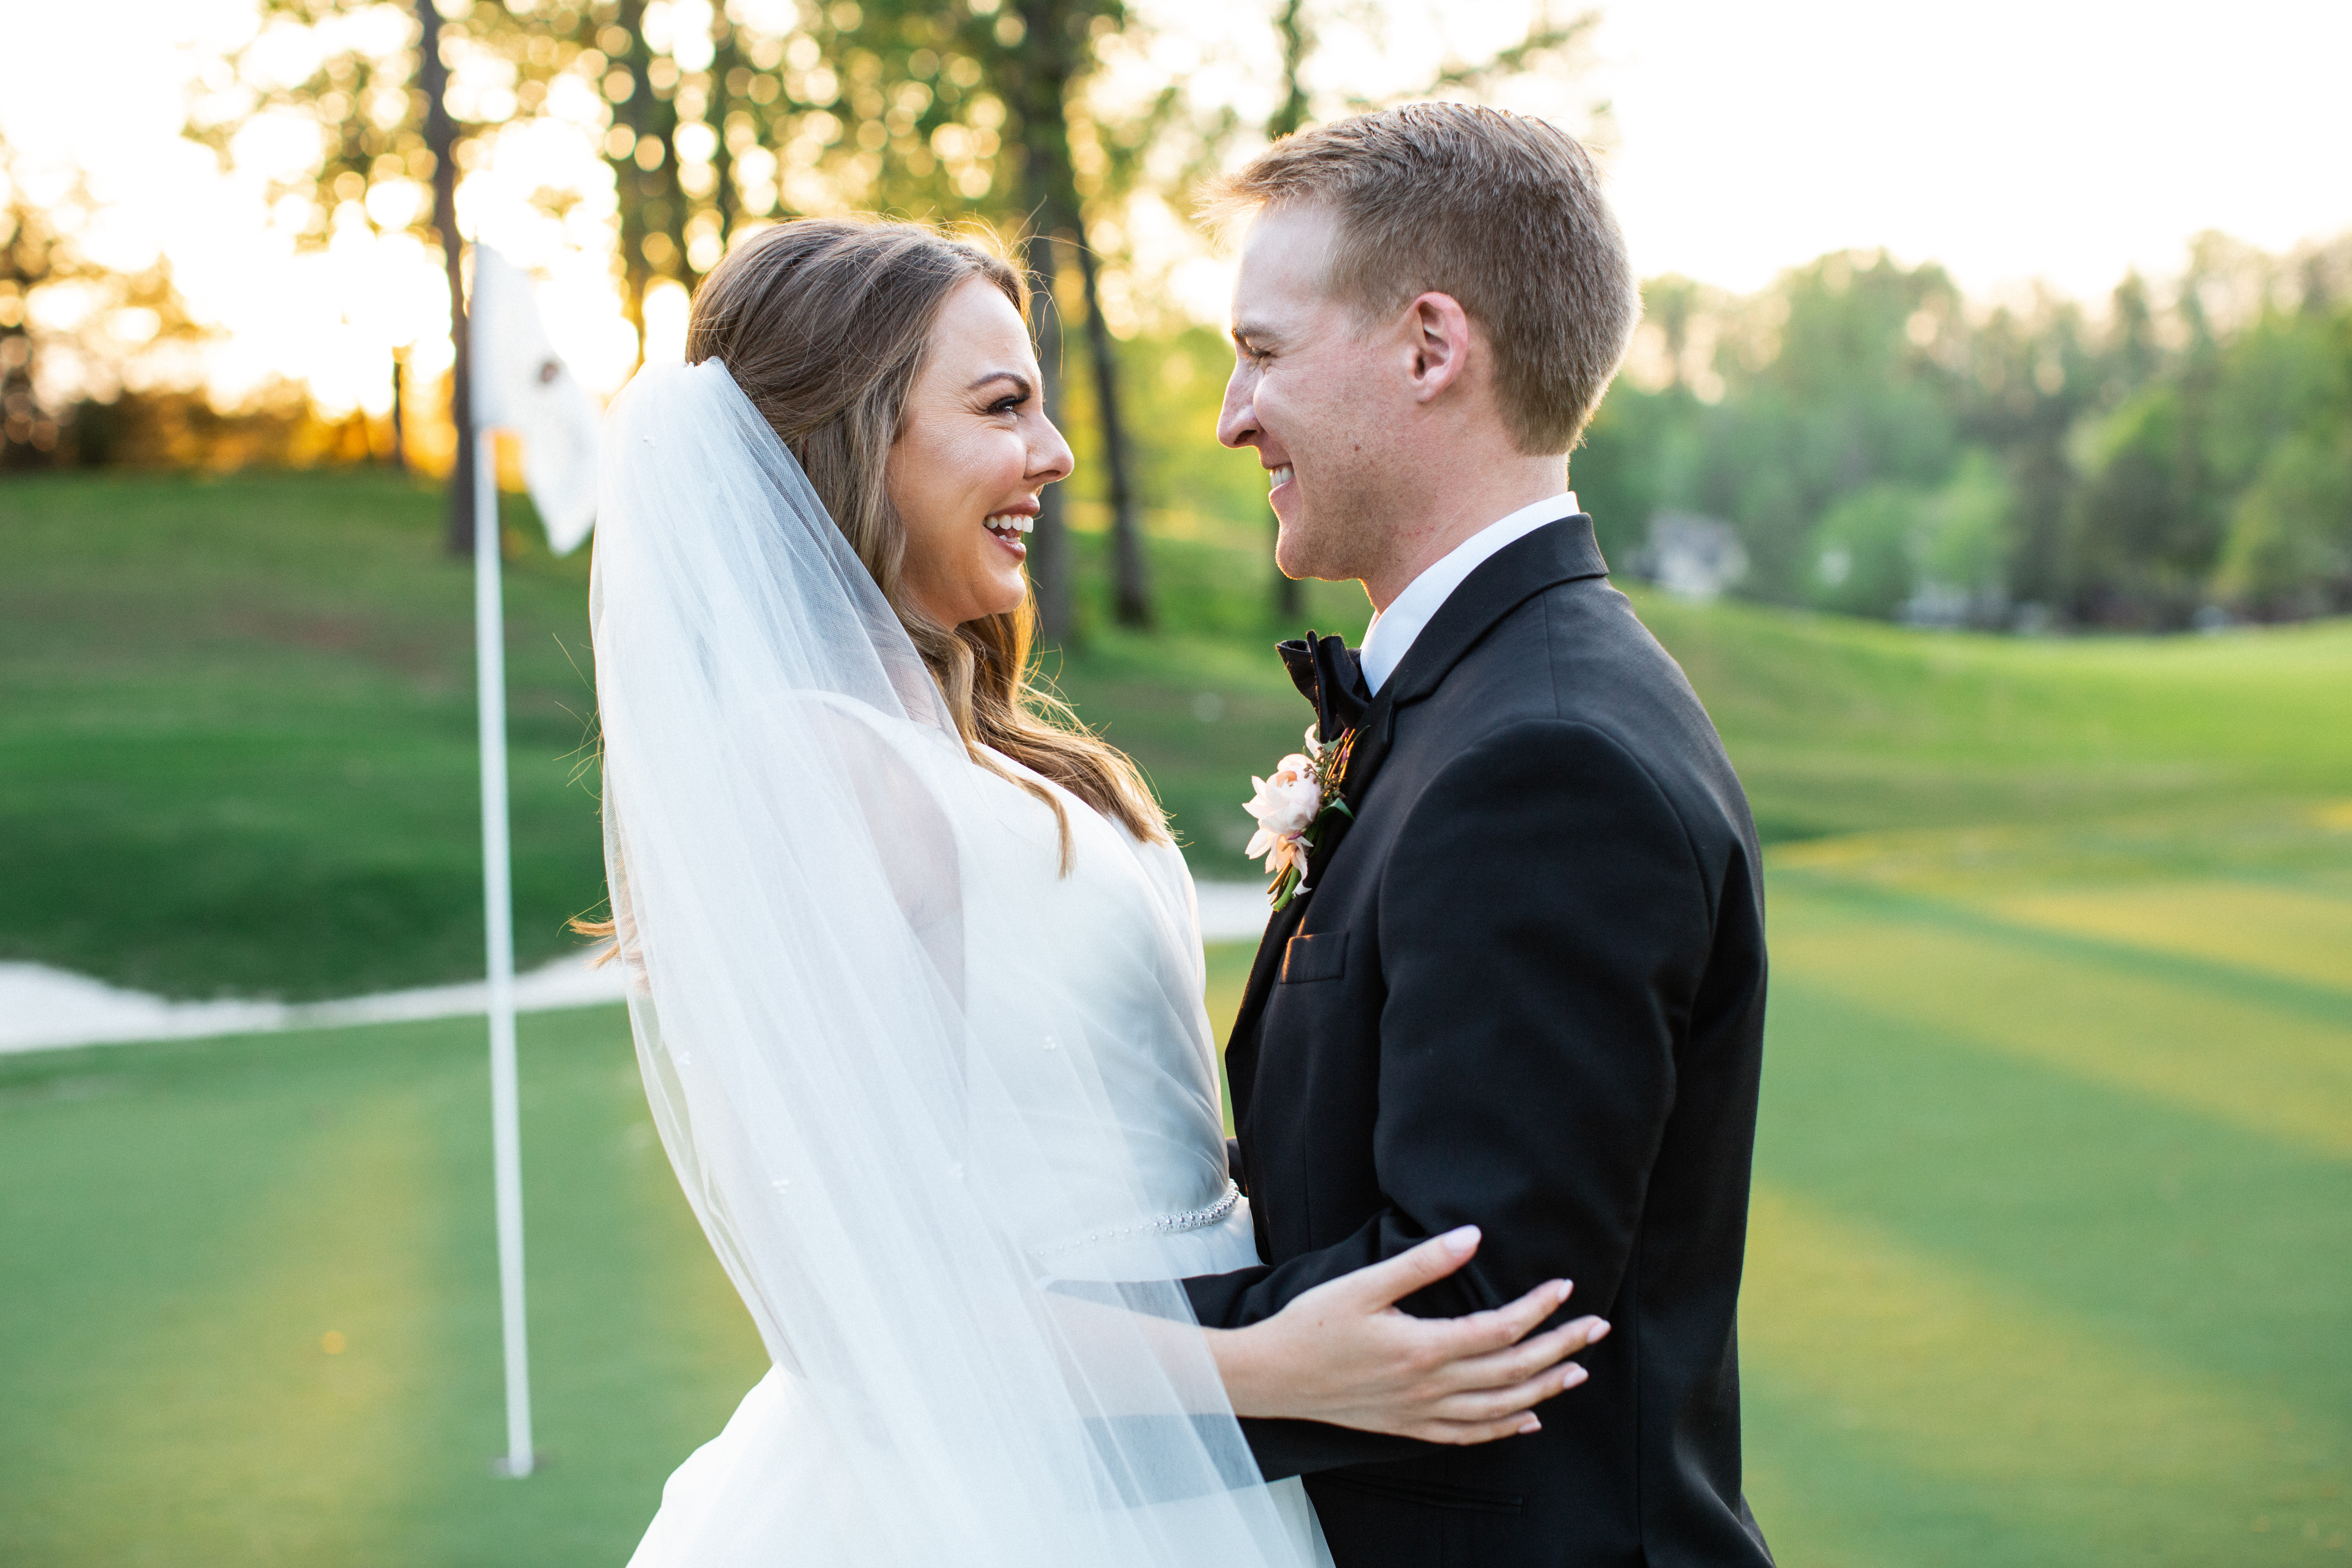 The Satterfield's Wedding Was the 'Most Beautiful and Amazing Night' of Their Lives